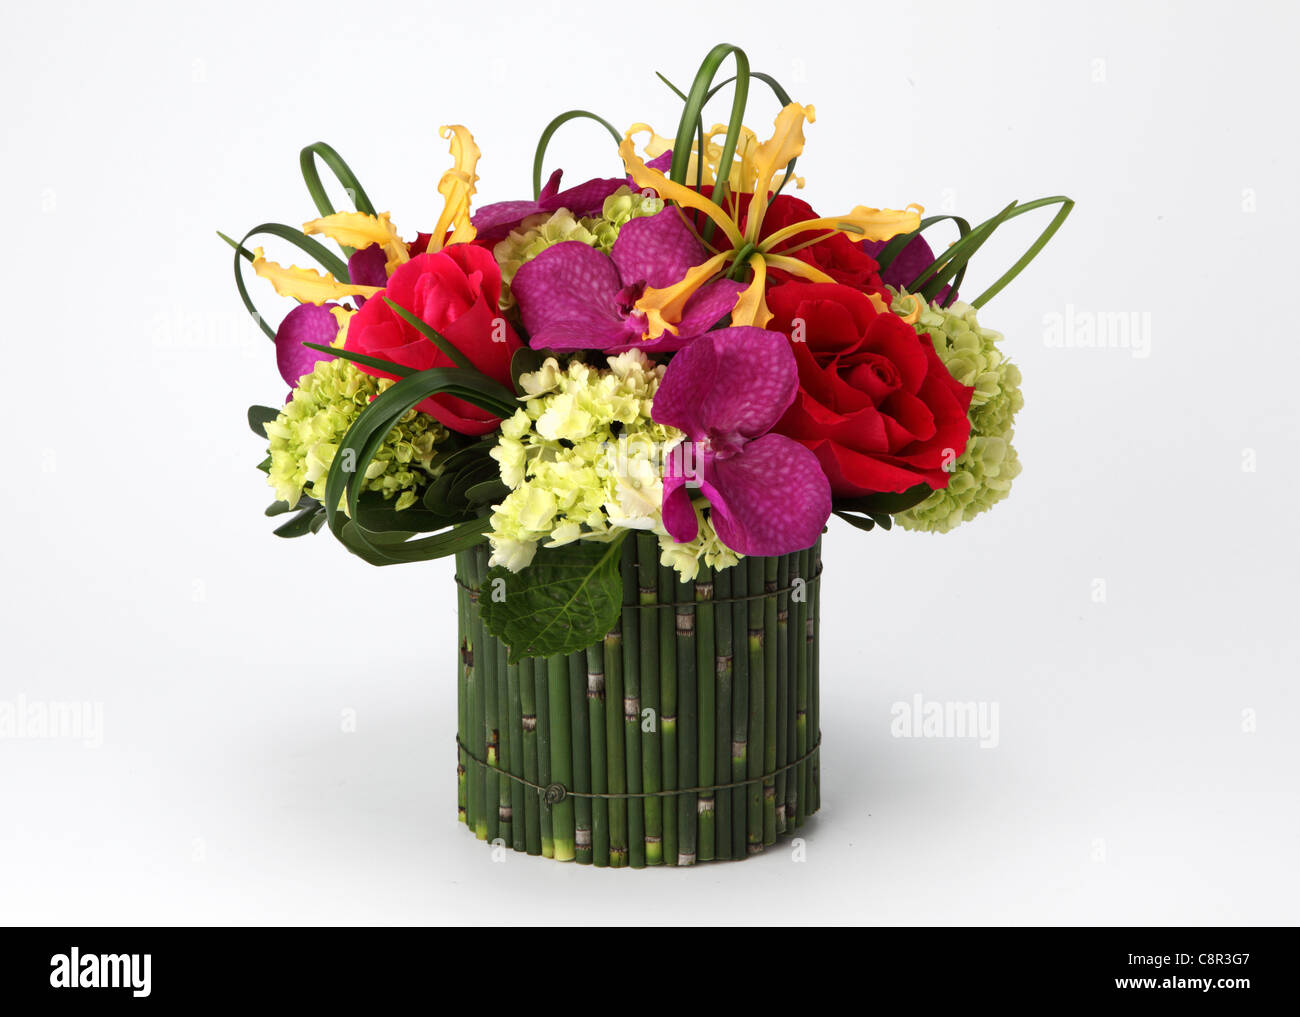 A colorful bouquet of flowers in a vase red roses cream hydrangea a colorful bouquet of flowers in a vase red roses cream hydrangea yellow orchid laelia purple orchid vanda izmirmasajfo